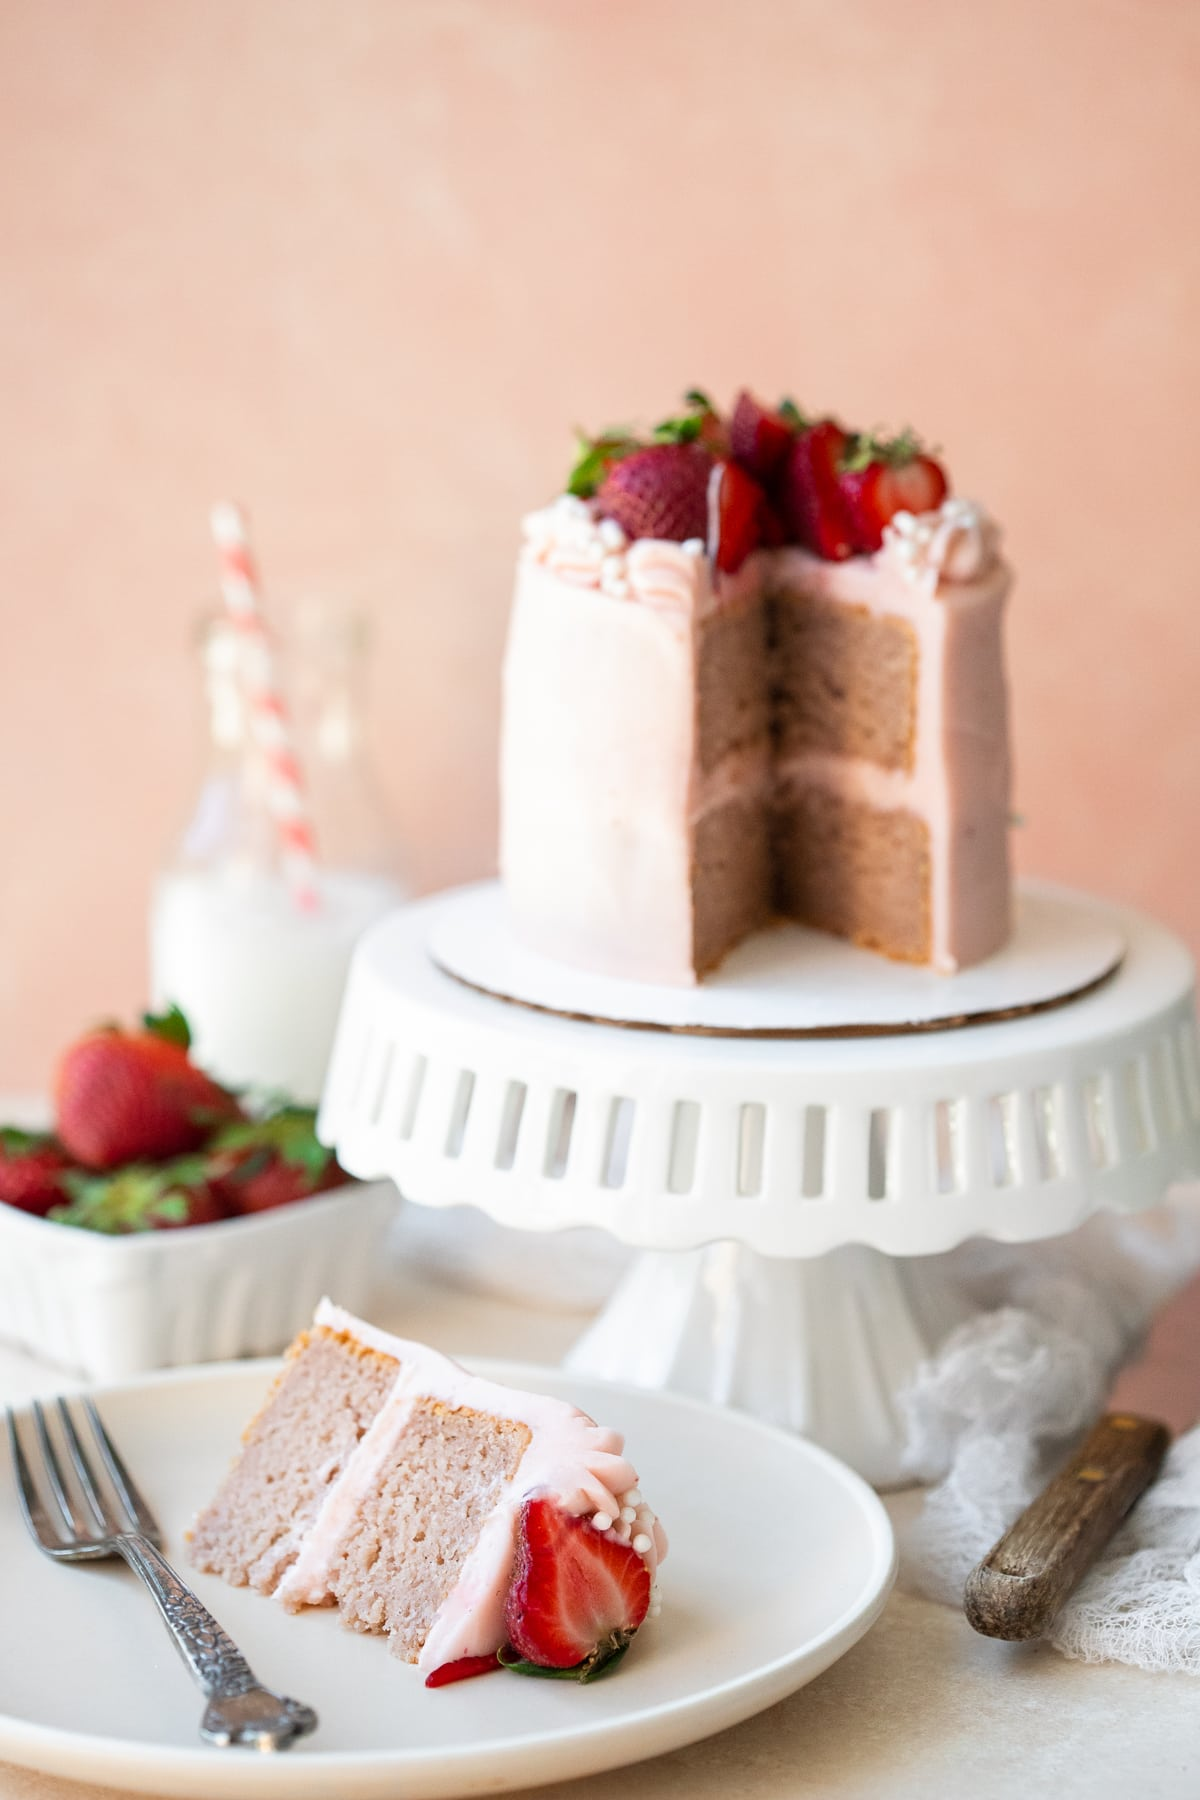 Slice of cake on a plate, with the remainder on a stand in the background, alongside strawberries and a milk bottle.